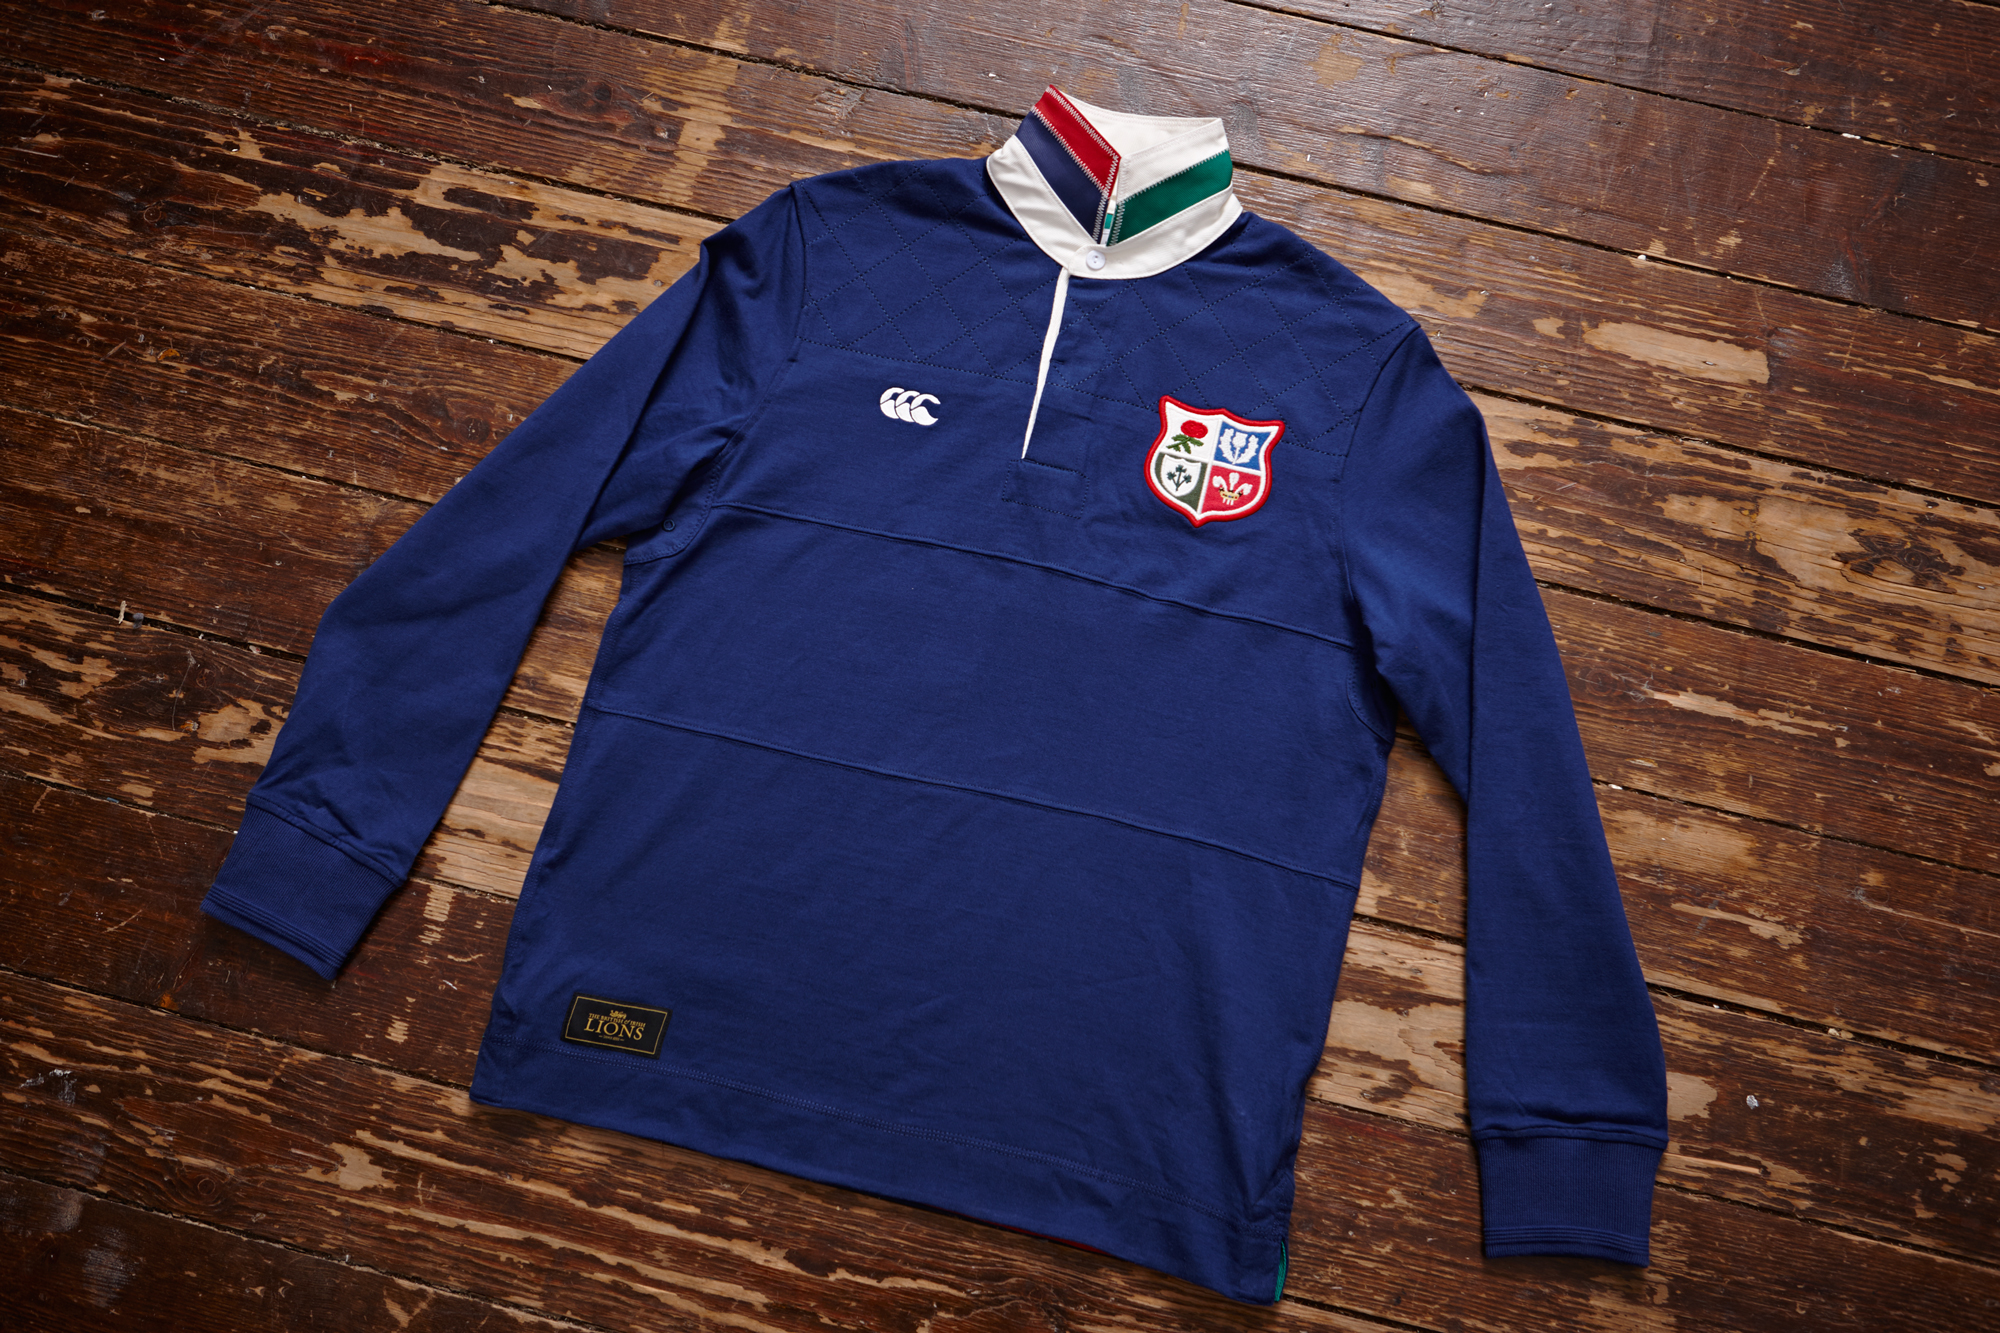 HIGH-RES B97 2912 ÔÇô PANELLED RUGBY - INSPIRED DIRECTLY BY THE 1924 JERSEY